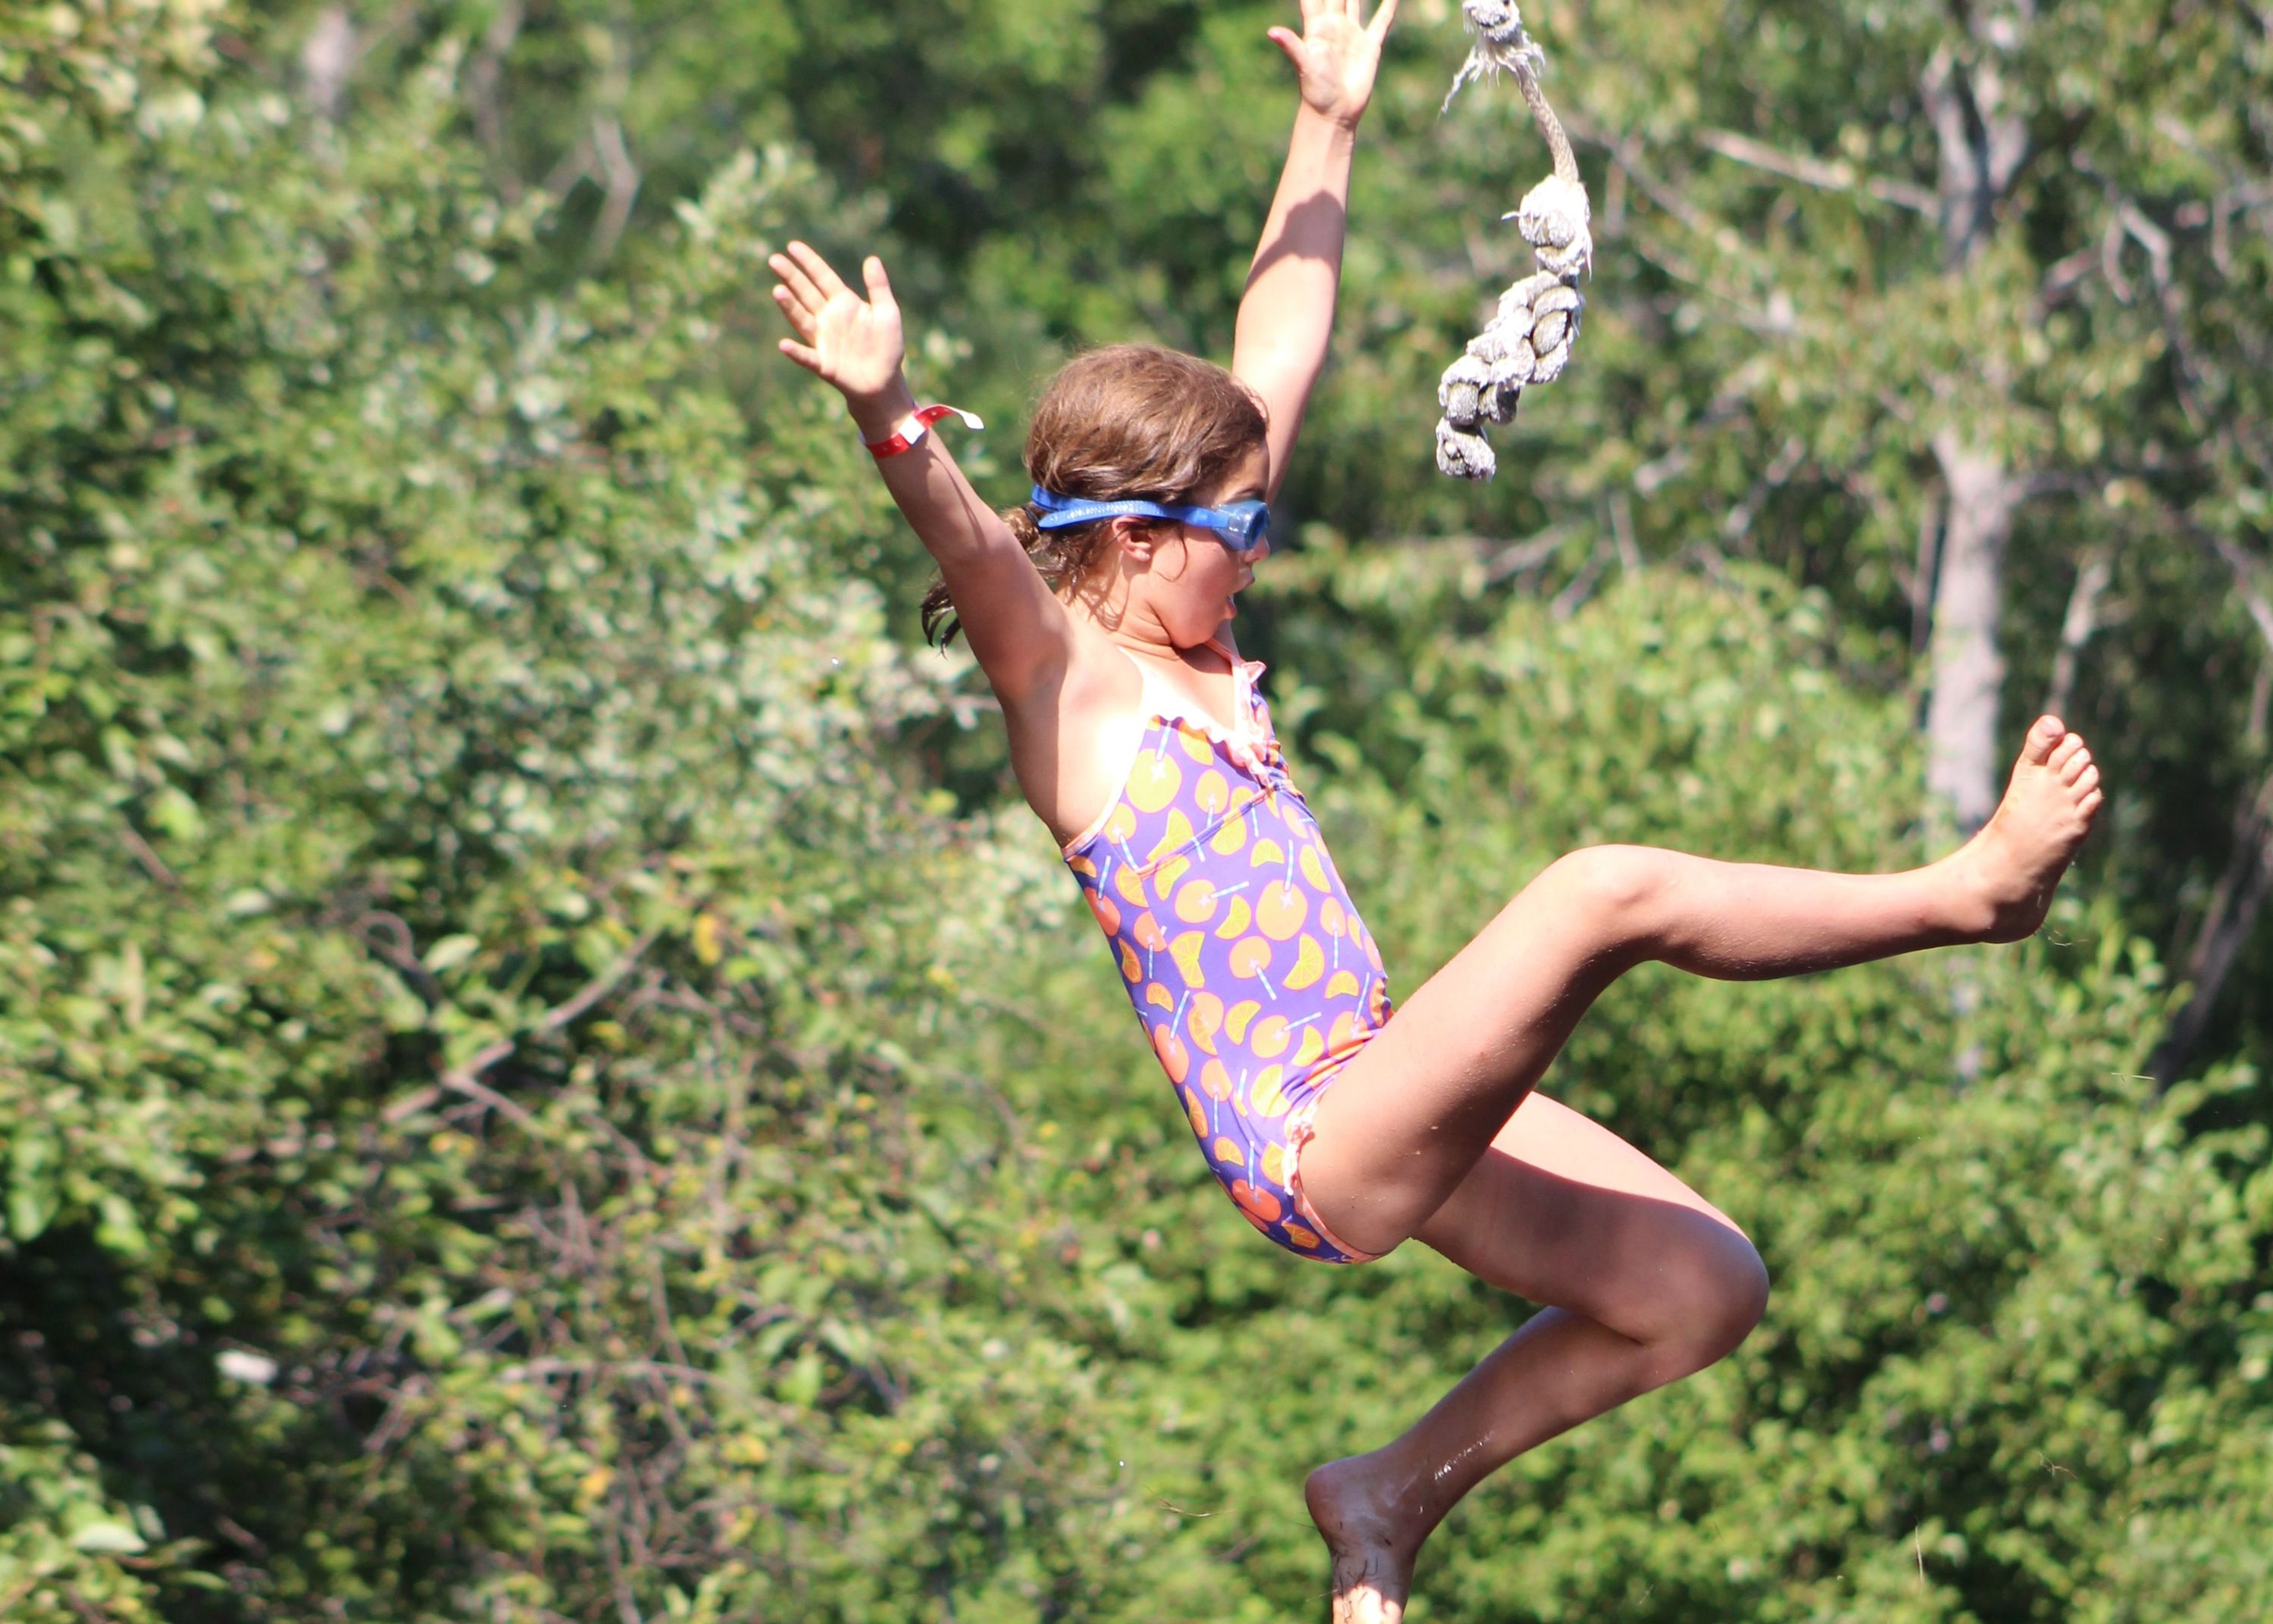 Camper swinging off swing rope into pond at christian adventure summer camp in haliburton, ontario